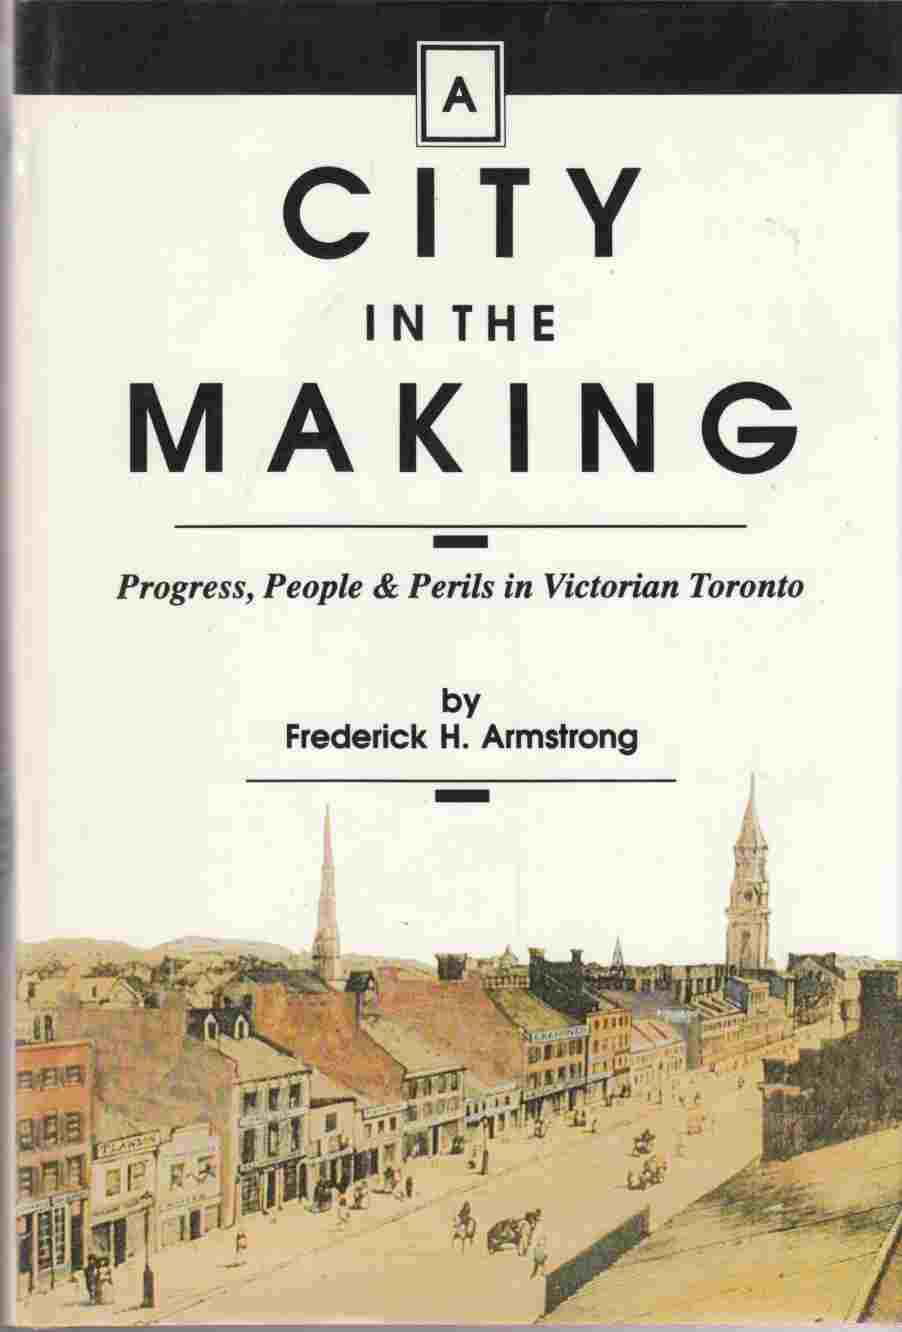 Image for A City in the Making Progress, People & Perils in Victorian Toronto